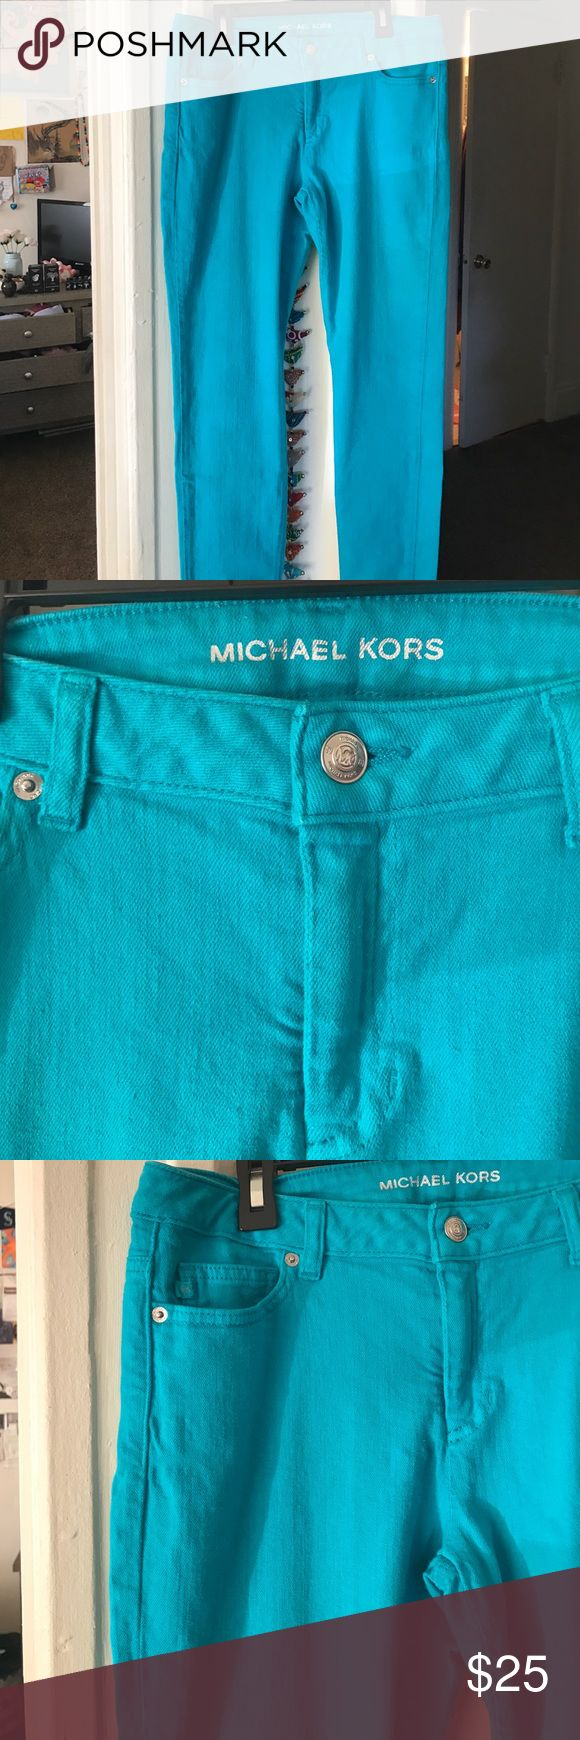 Michael Kors Denim Skinny Jeans Soft denim skinny jeans in teal with golden MK logo on right back pocket. Great condition, only worn once! Michael Kors Jeans Skinny